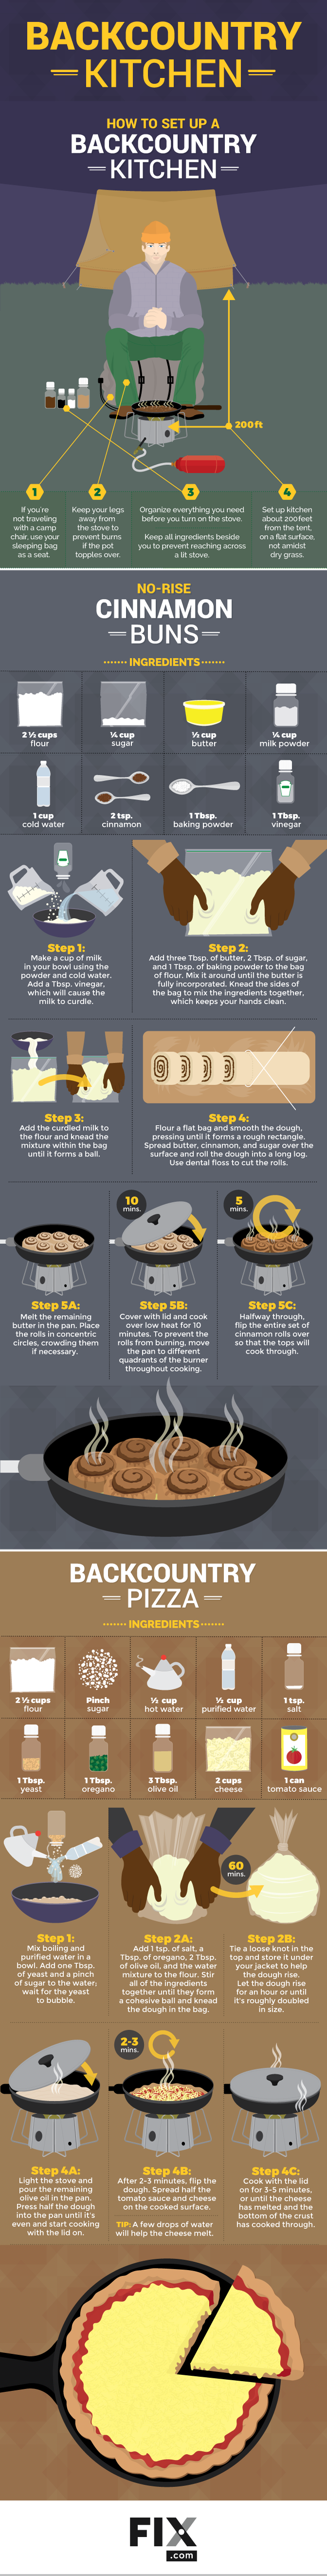 Backcountry Kitchen #Infographic